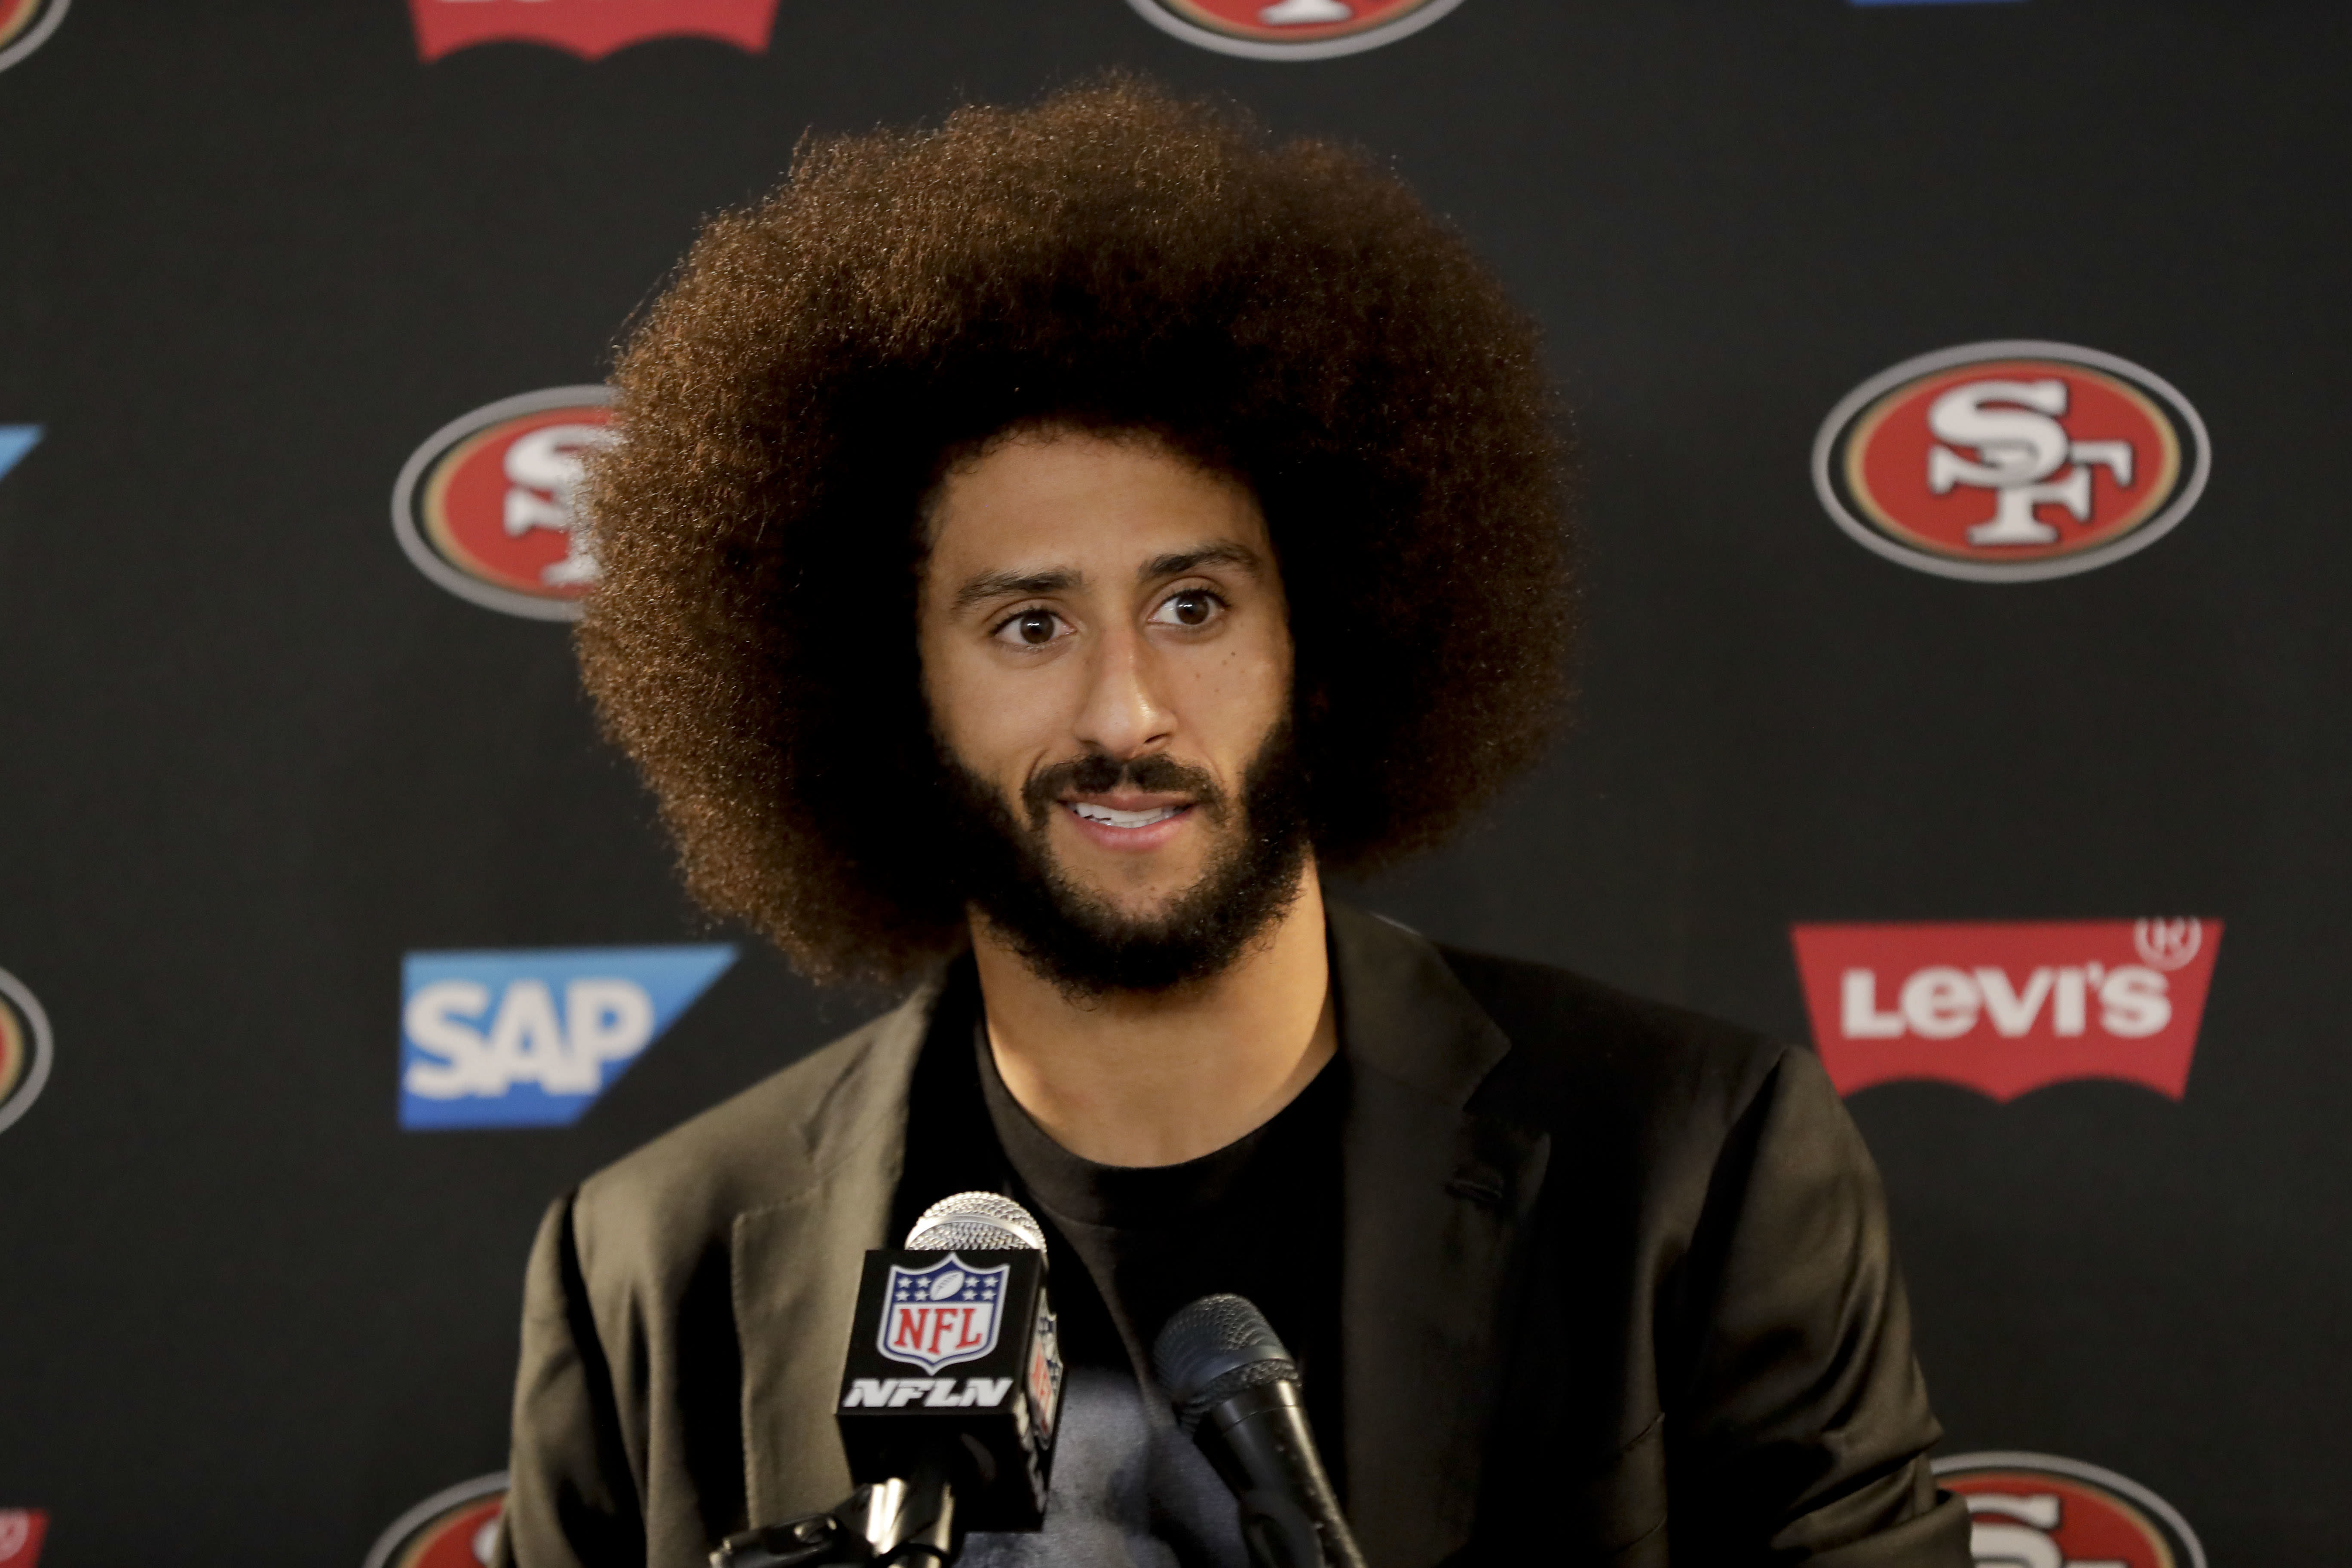 Sources: Colin Kaepernick's deposition request list in NFL grievance case includes Roger Goodell's wife